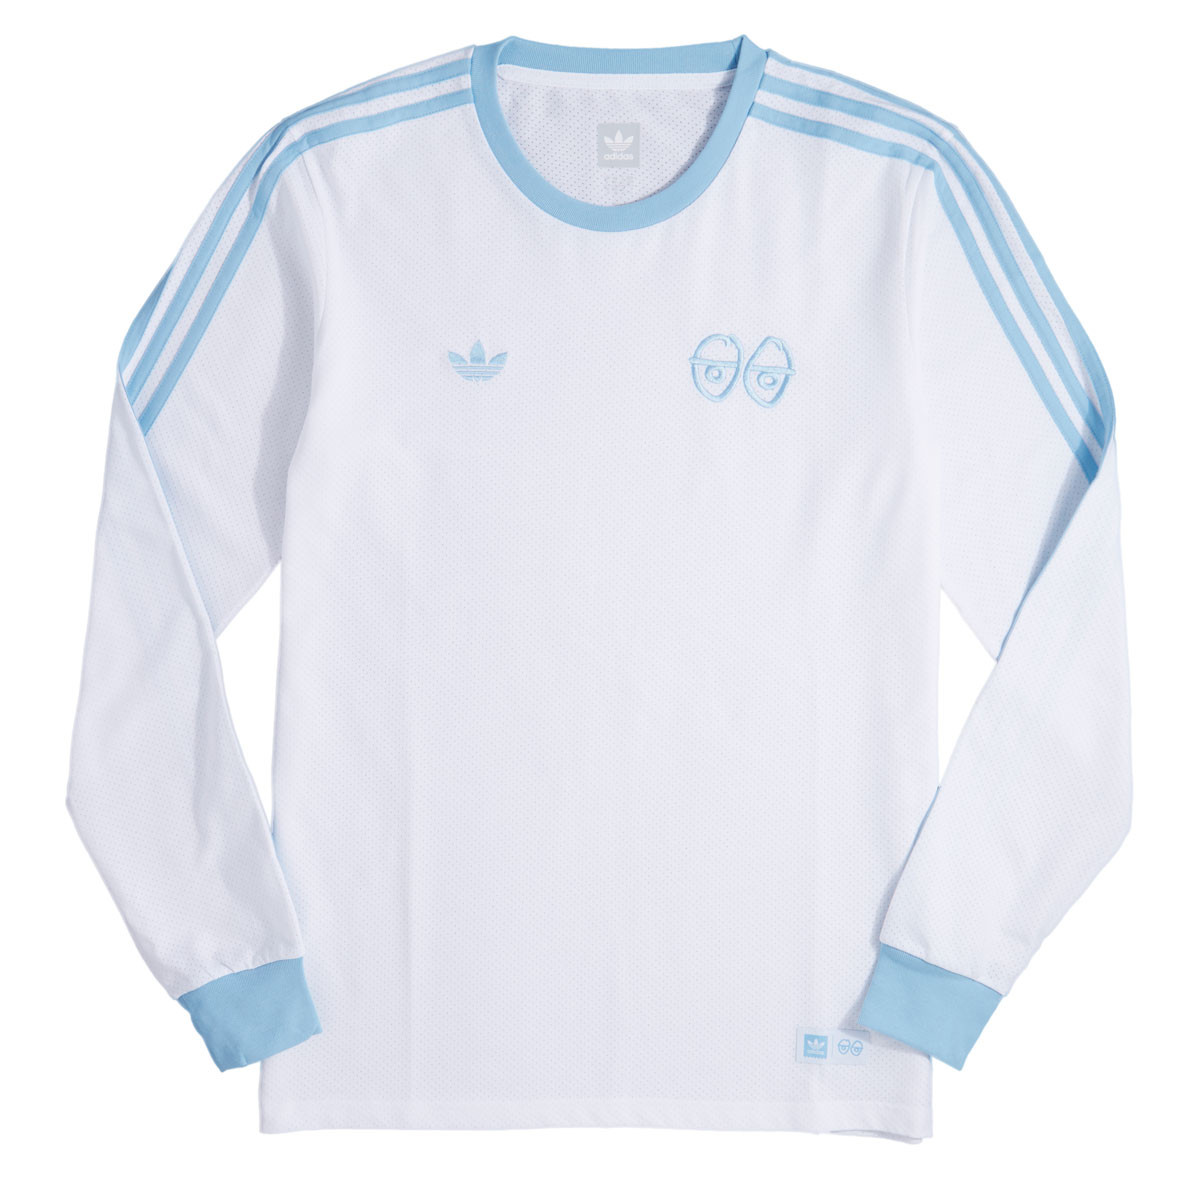 Adidas X Krooked T Shirt WhiteClear Blue